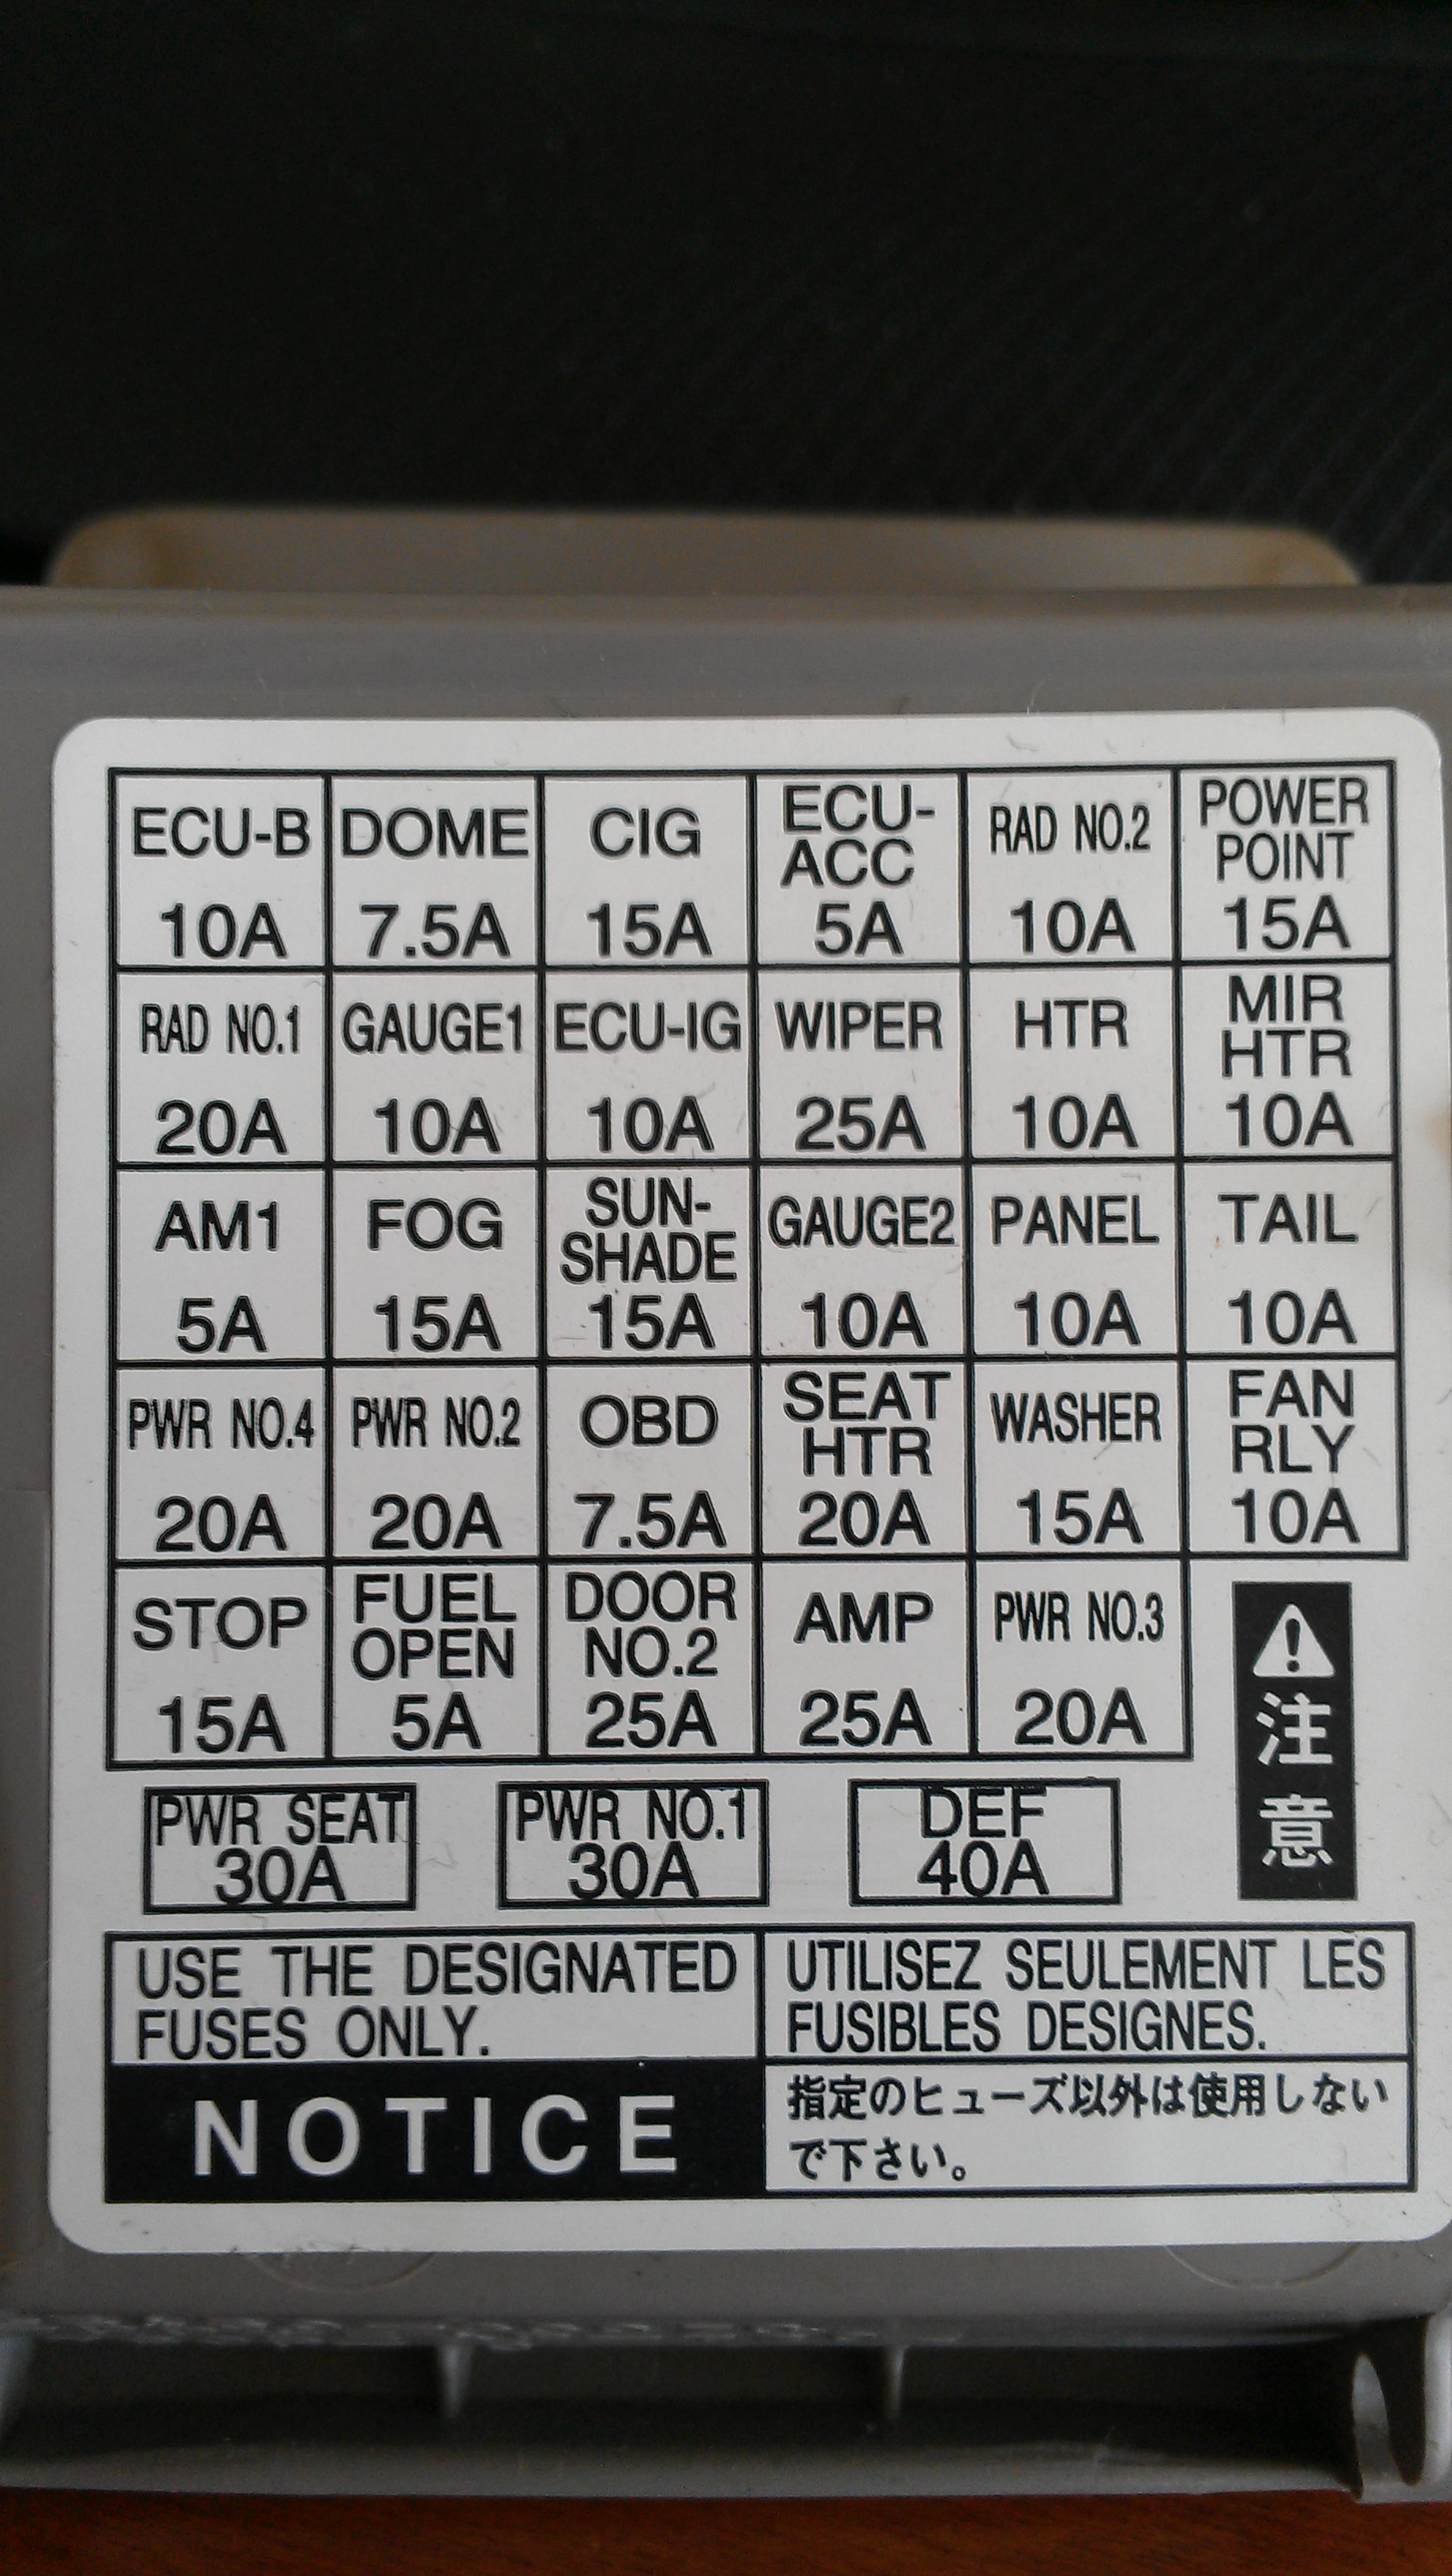 hight resolution of lexus is200 fuse box location wiring library 2003 lexus es300 fuse schematic lexus engine compartment fuse